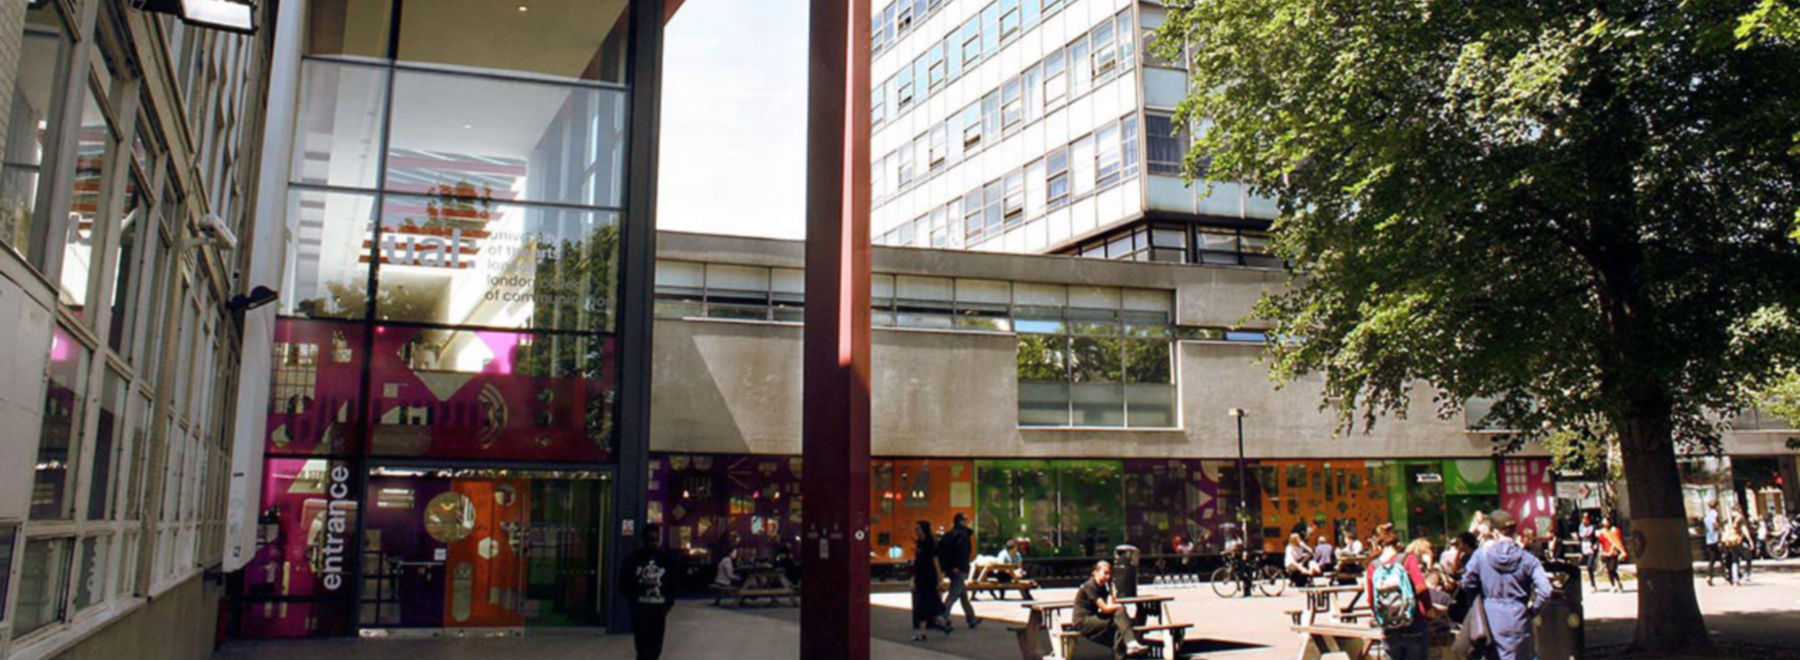 London College of Communication header